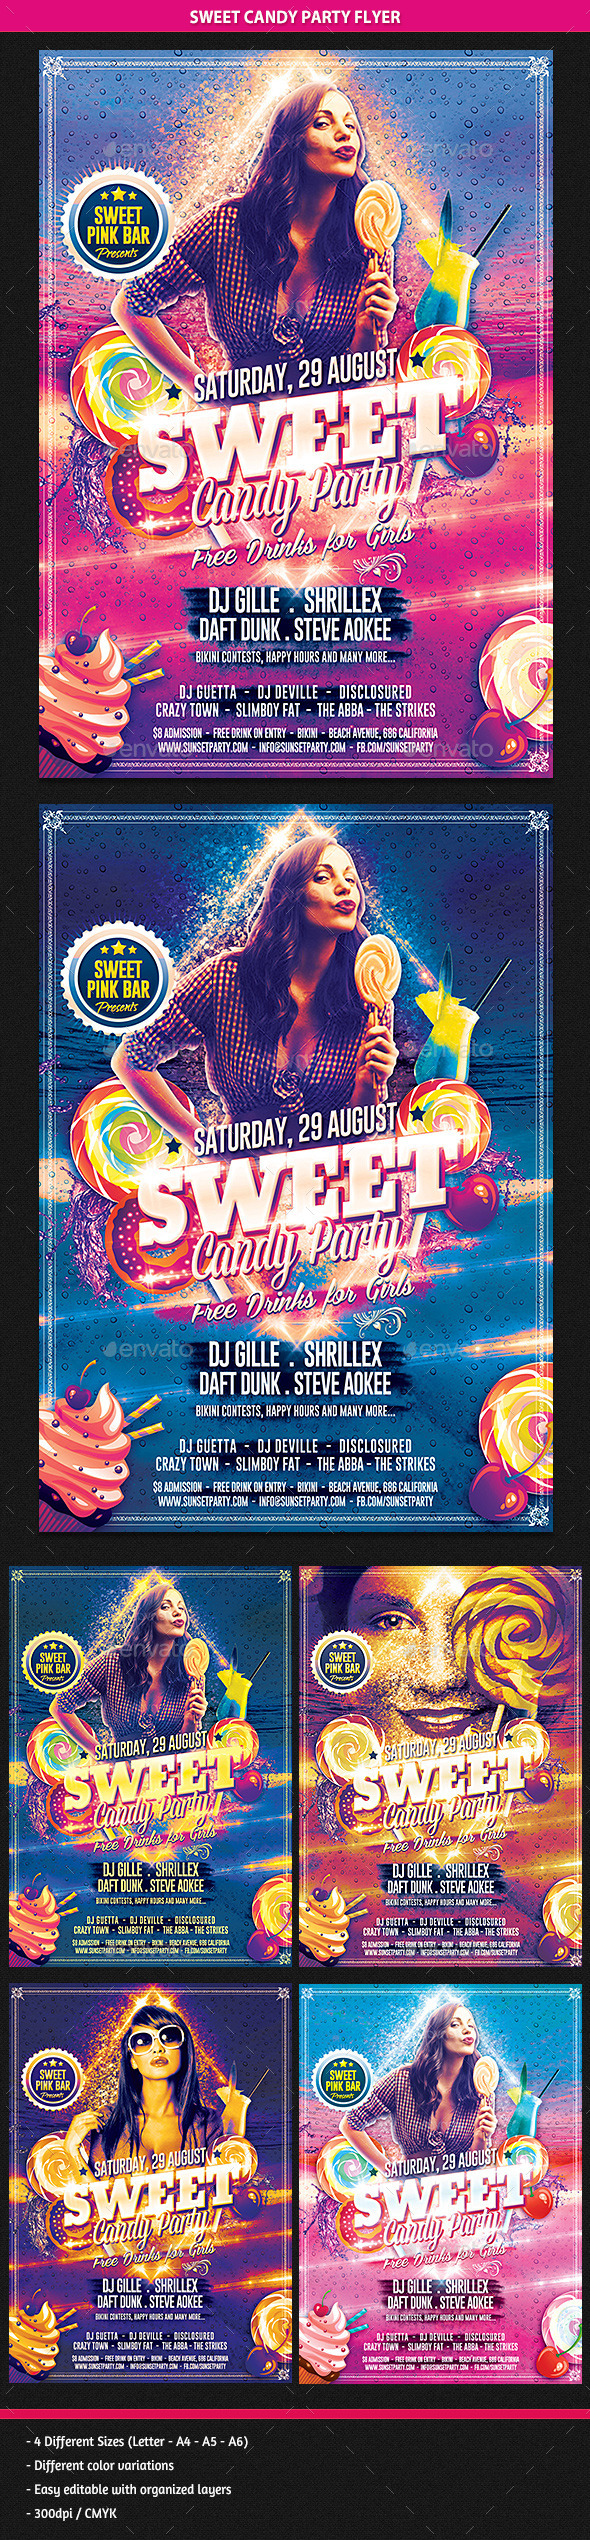 Sweet Candy Party Flyer - Clubs & Parties Events